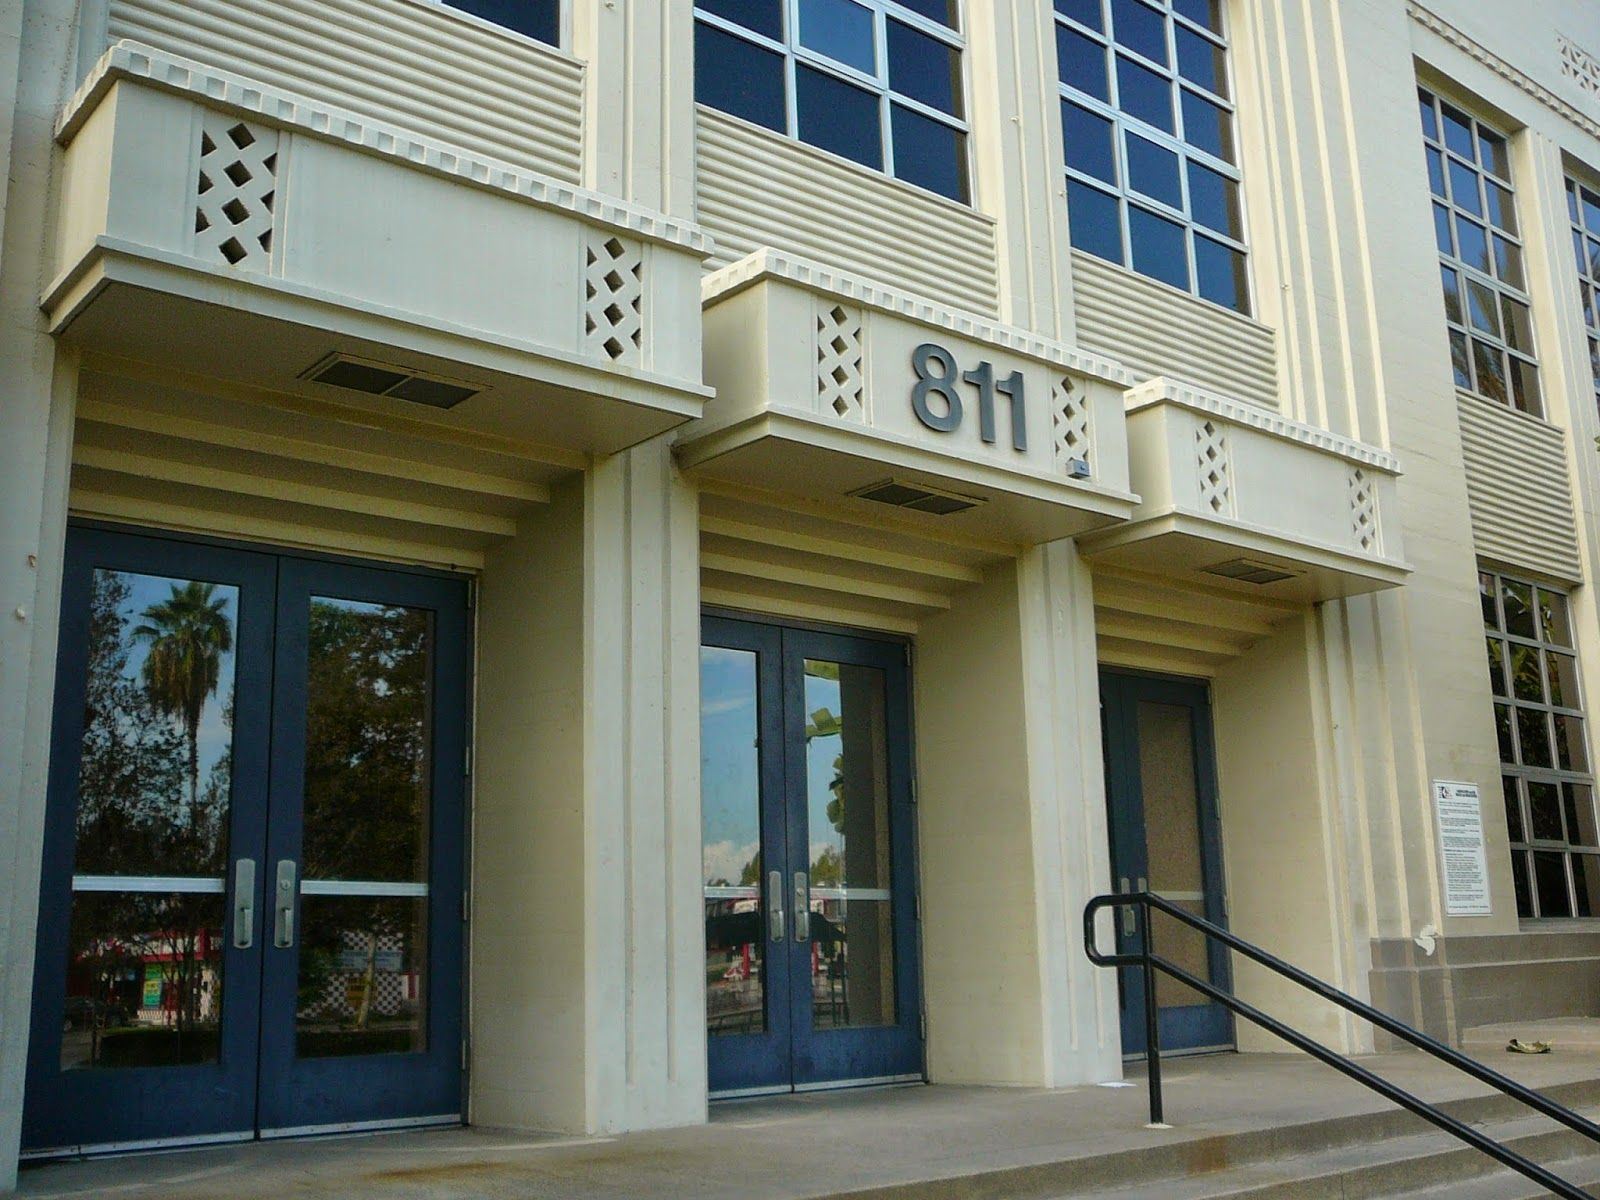 Orange county structure art deco architecture at anaheim - What is art deco style ...